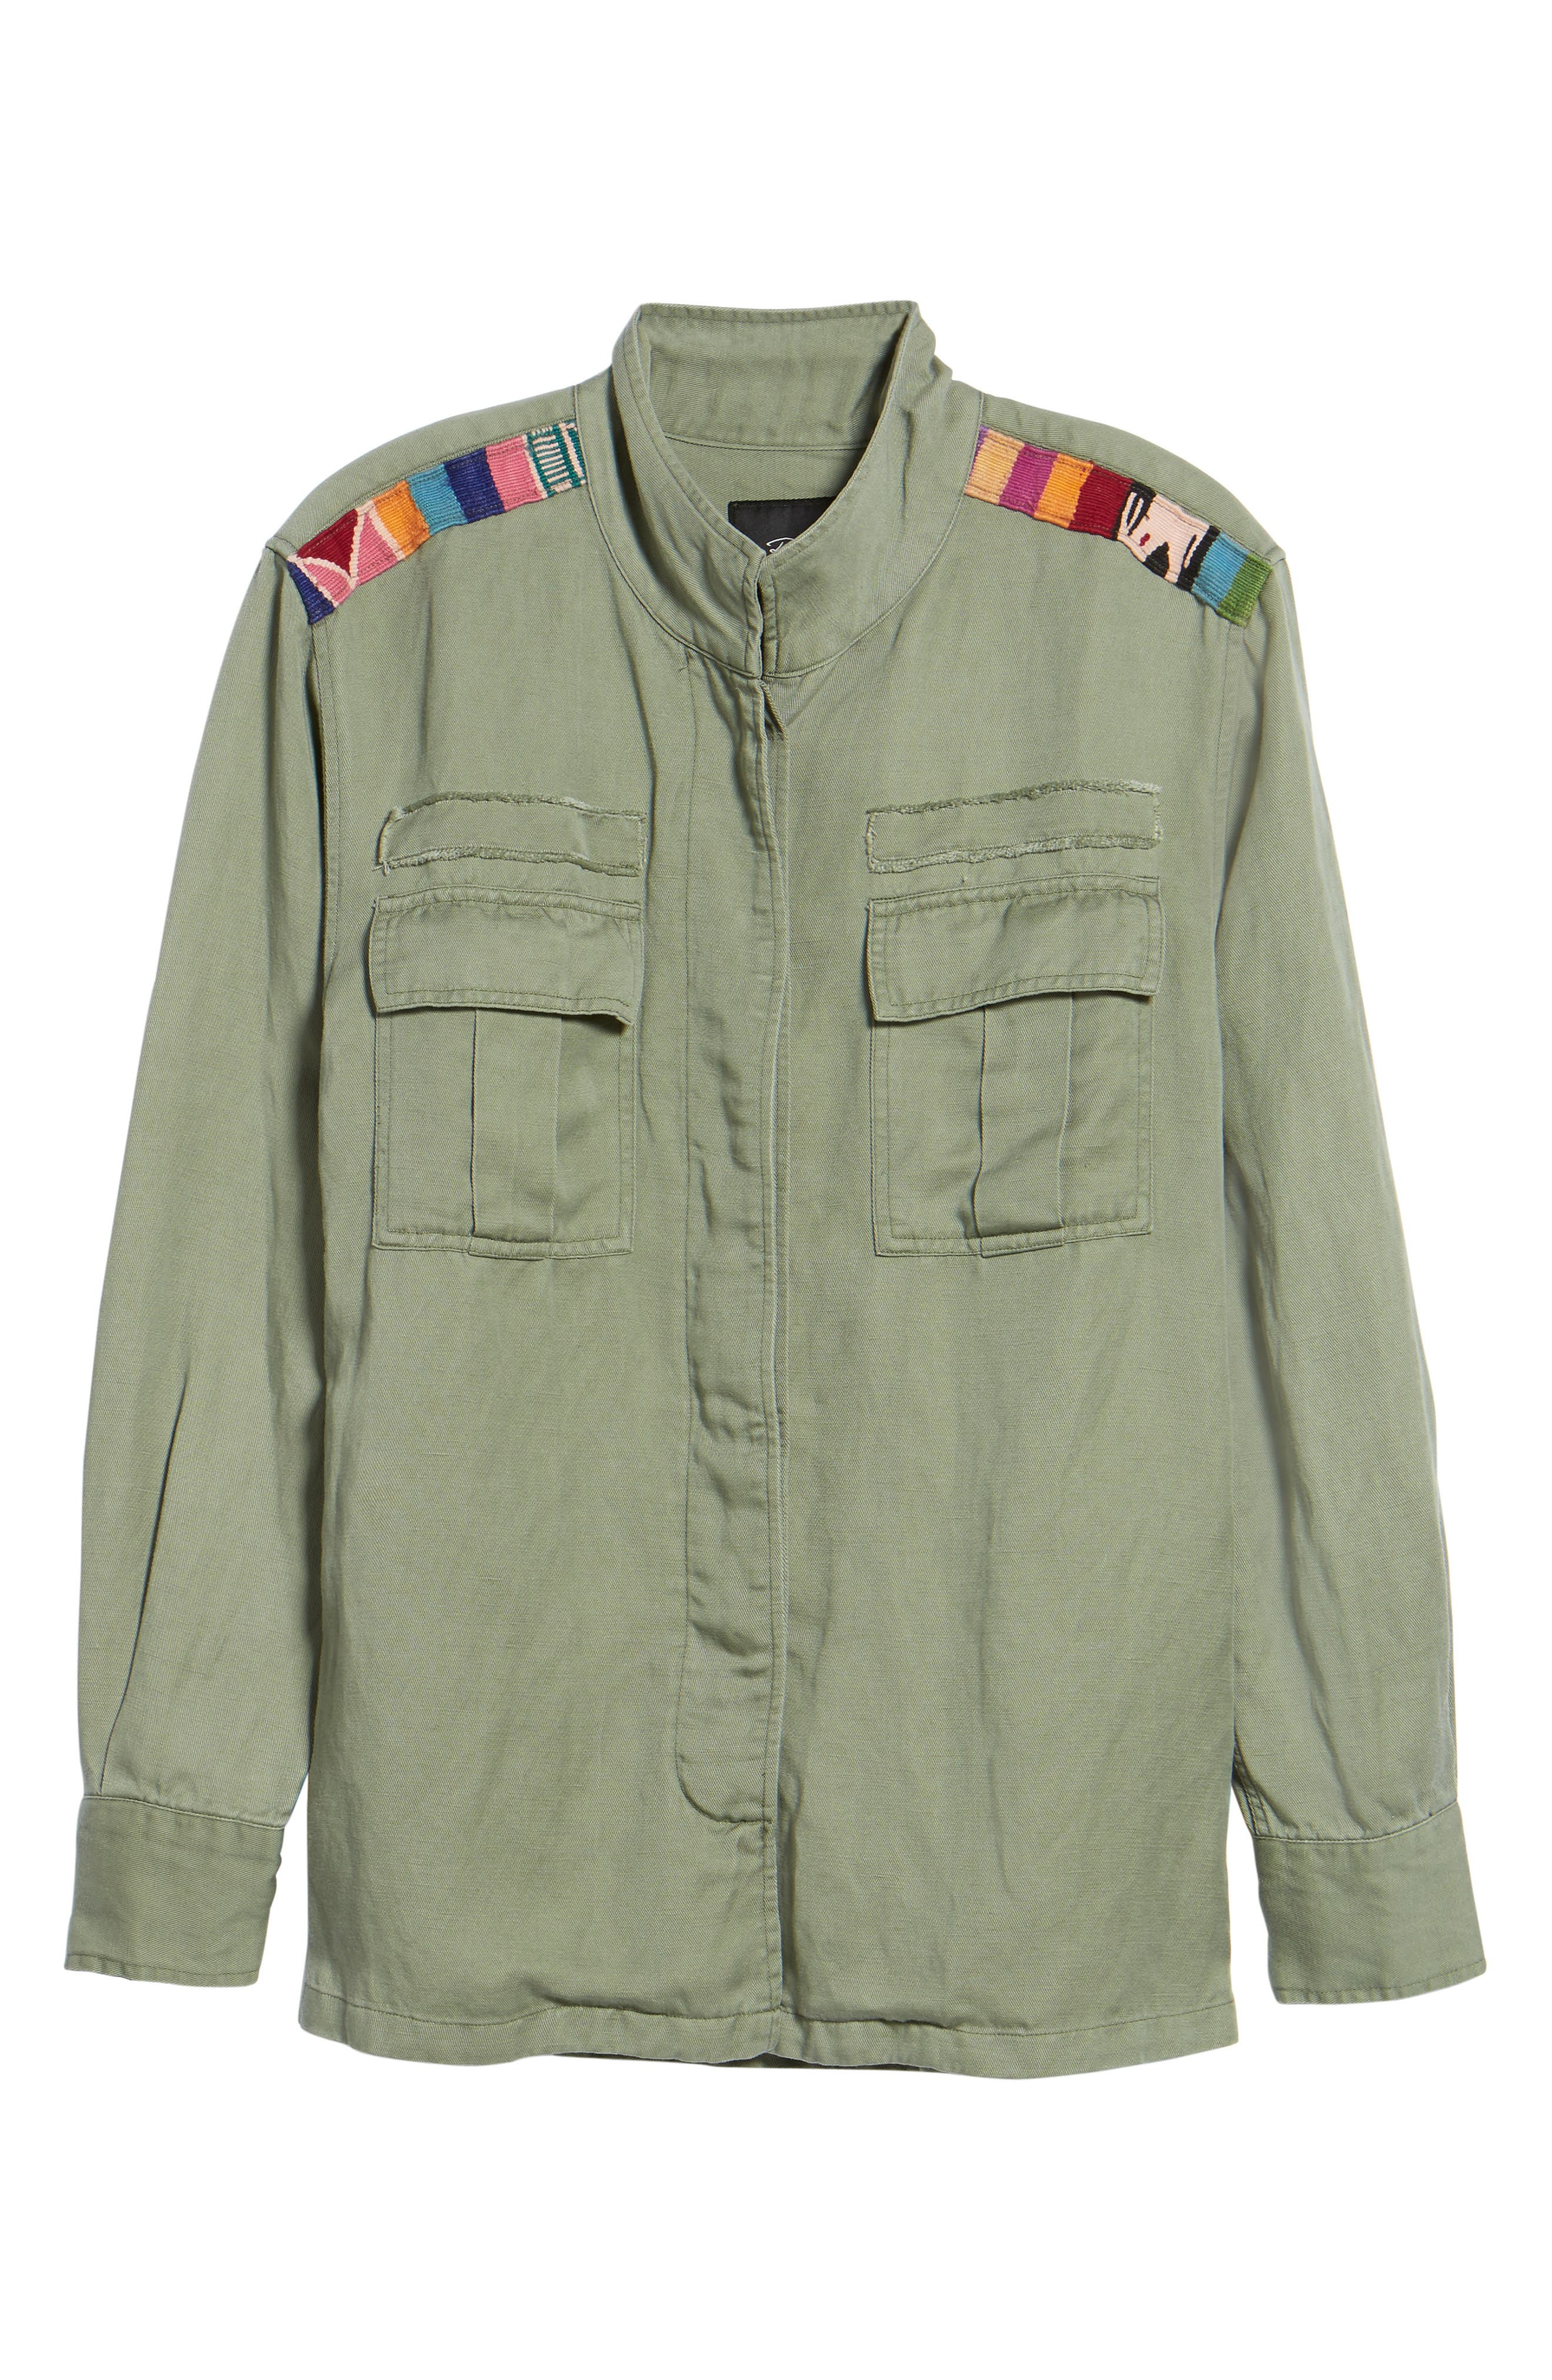 Hendrick Jacket,                             Alternate thumbnail 6, color,                             314